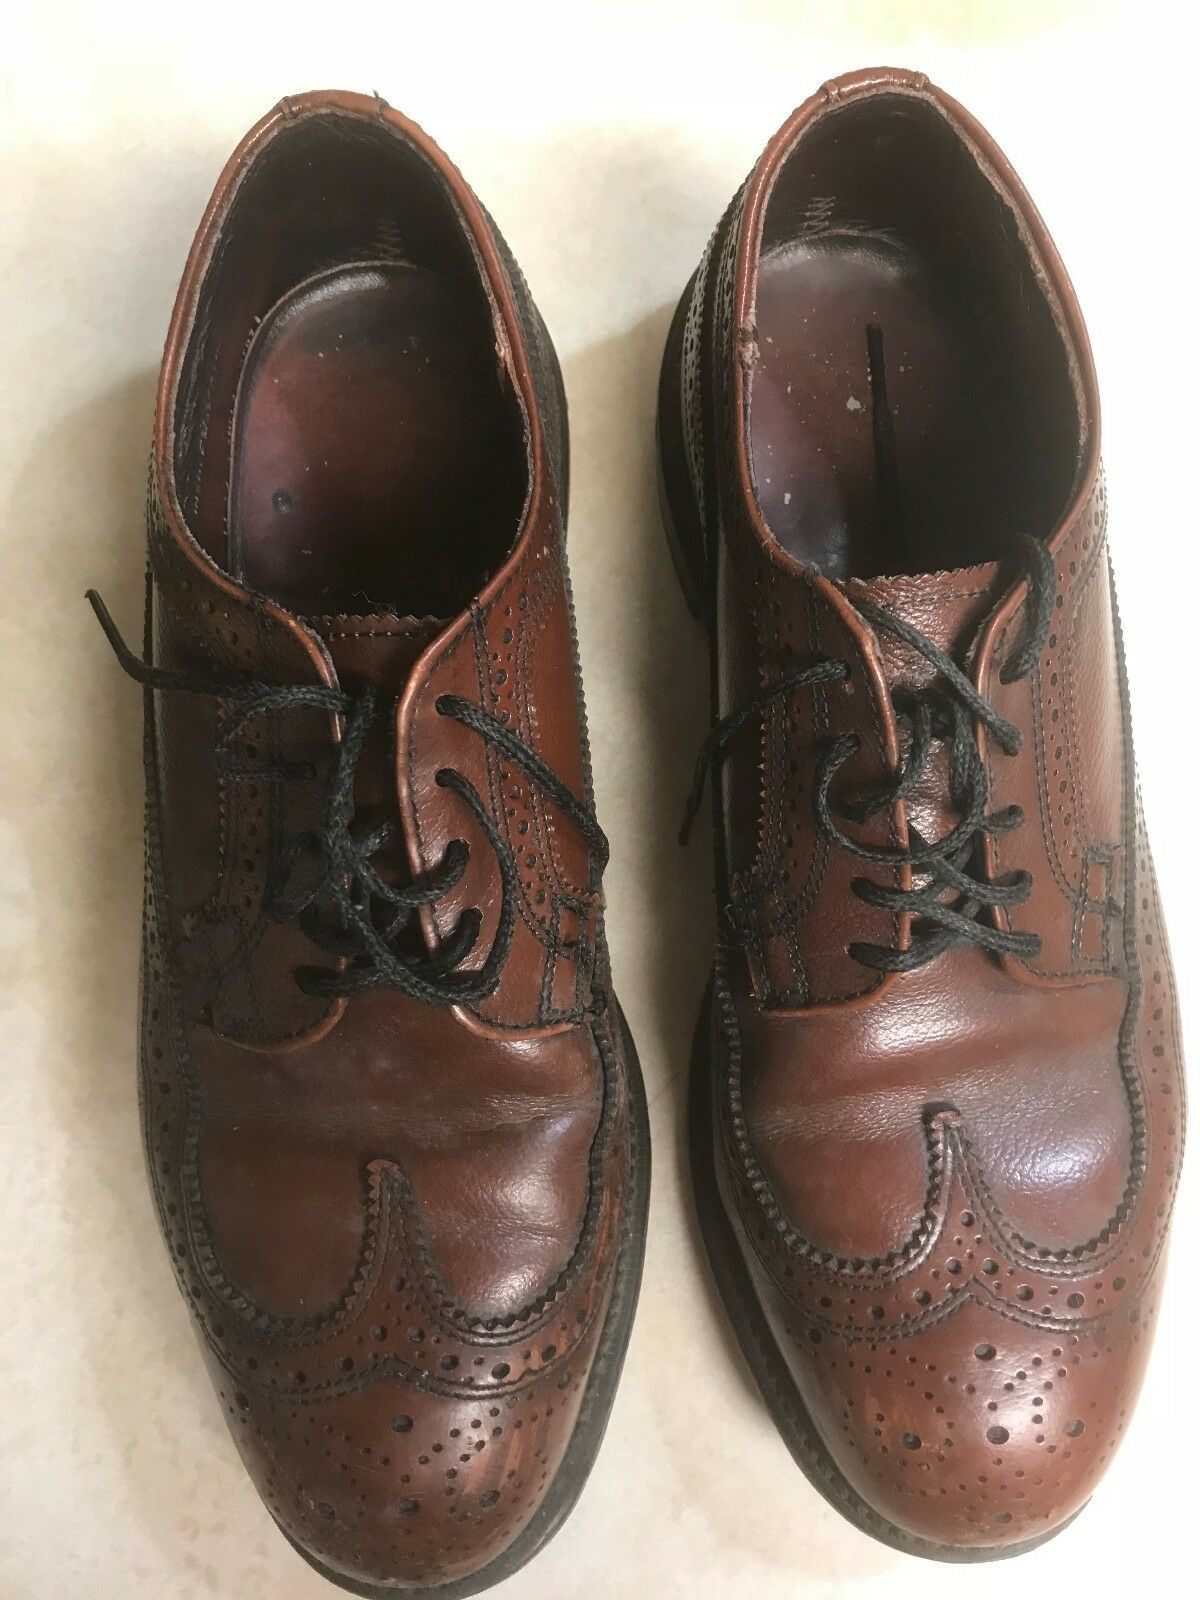 Vintage LEHIGH MENS BROWN  LEATHER OXFORD WING TIP STEEL TOE DRESS SHOES 7.5